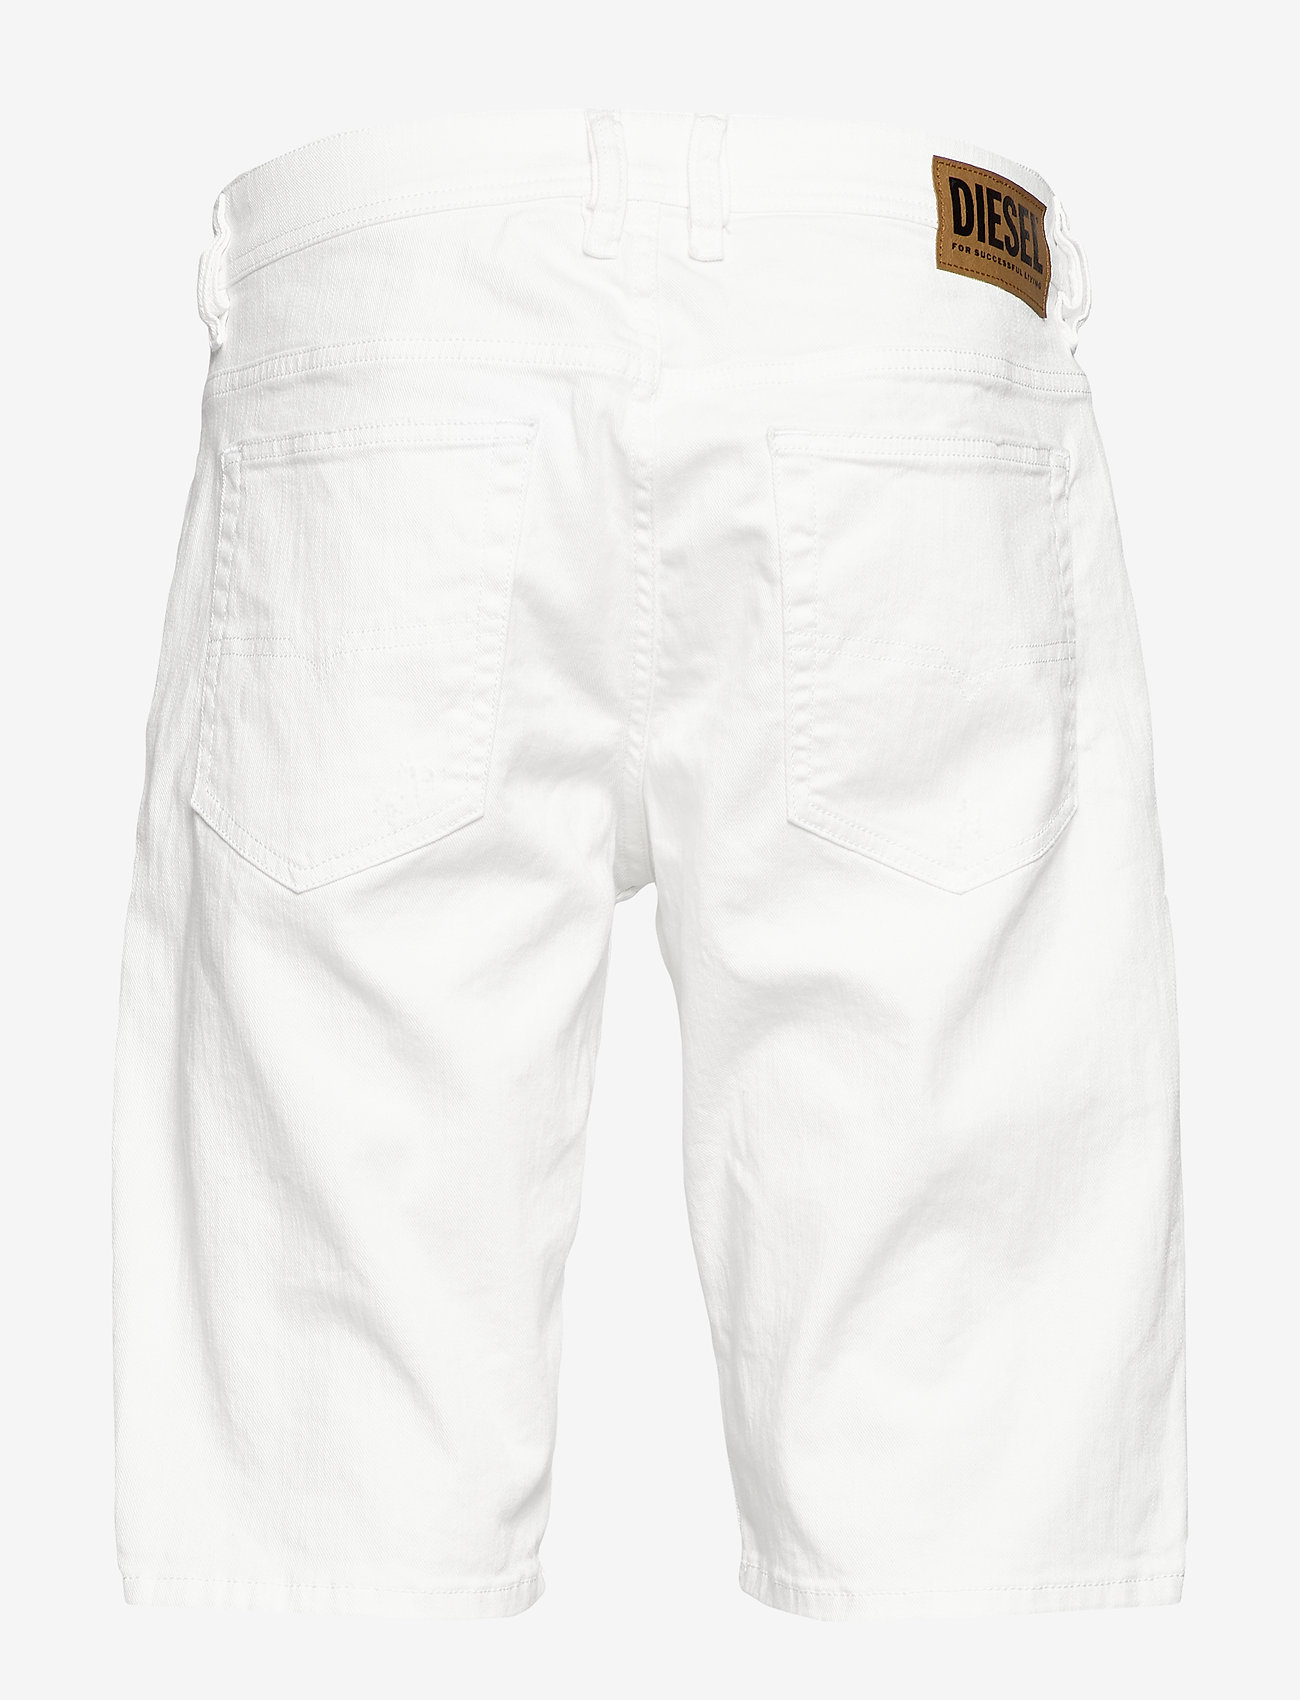 Diesel Men - THOSHORT SHORTS - farkkushortsit - bright white - 1